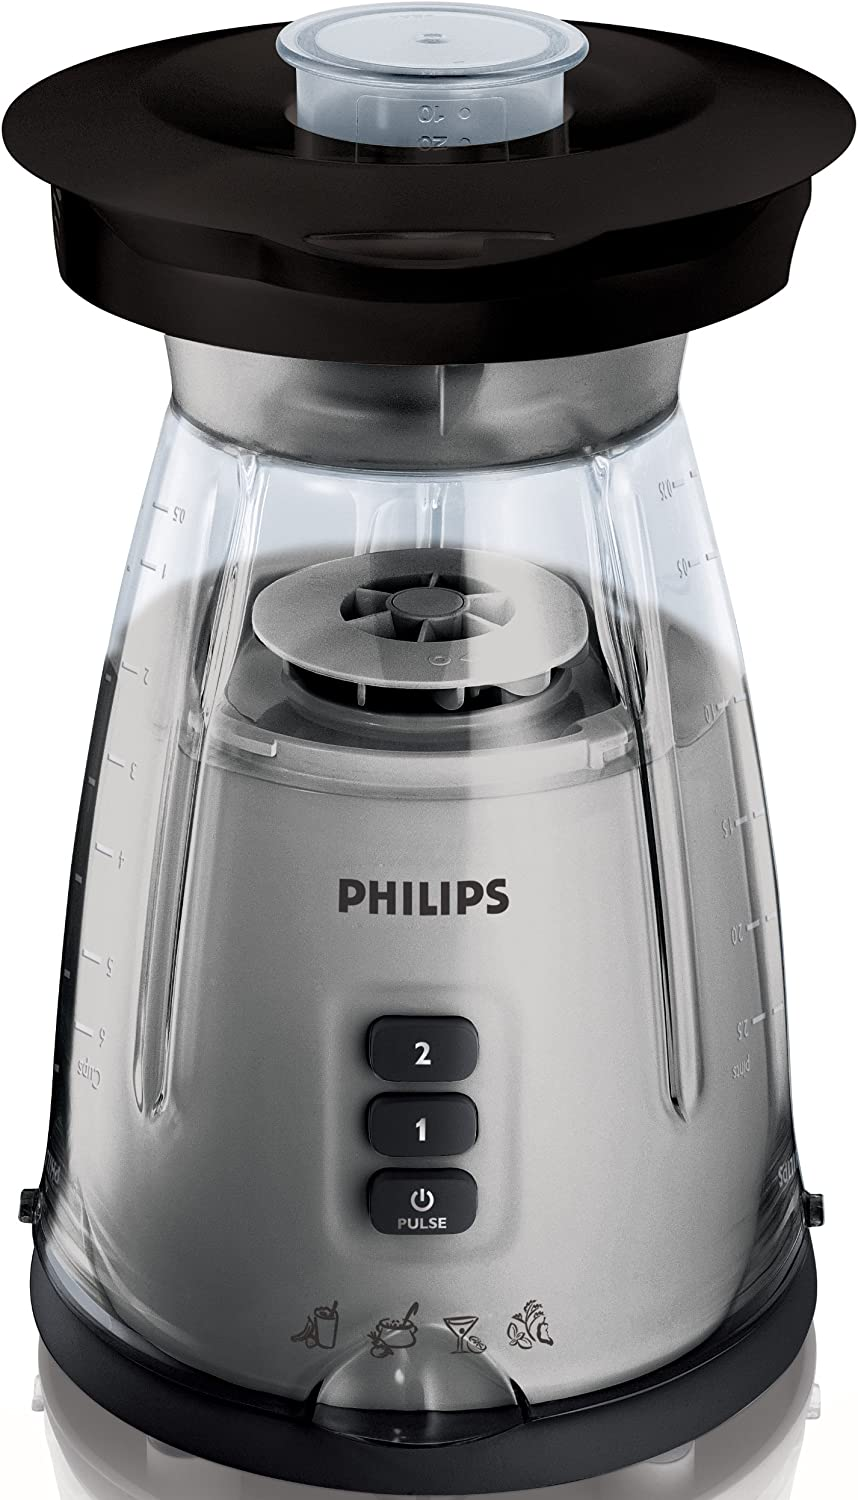 Philips HR2020/50 - Licuadora multifunción, 400 W, color negro ...